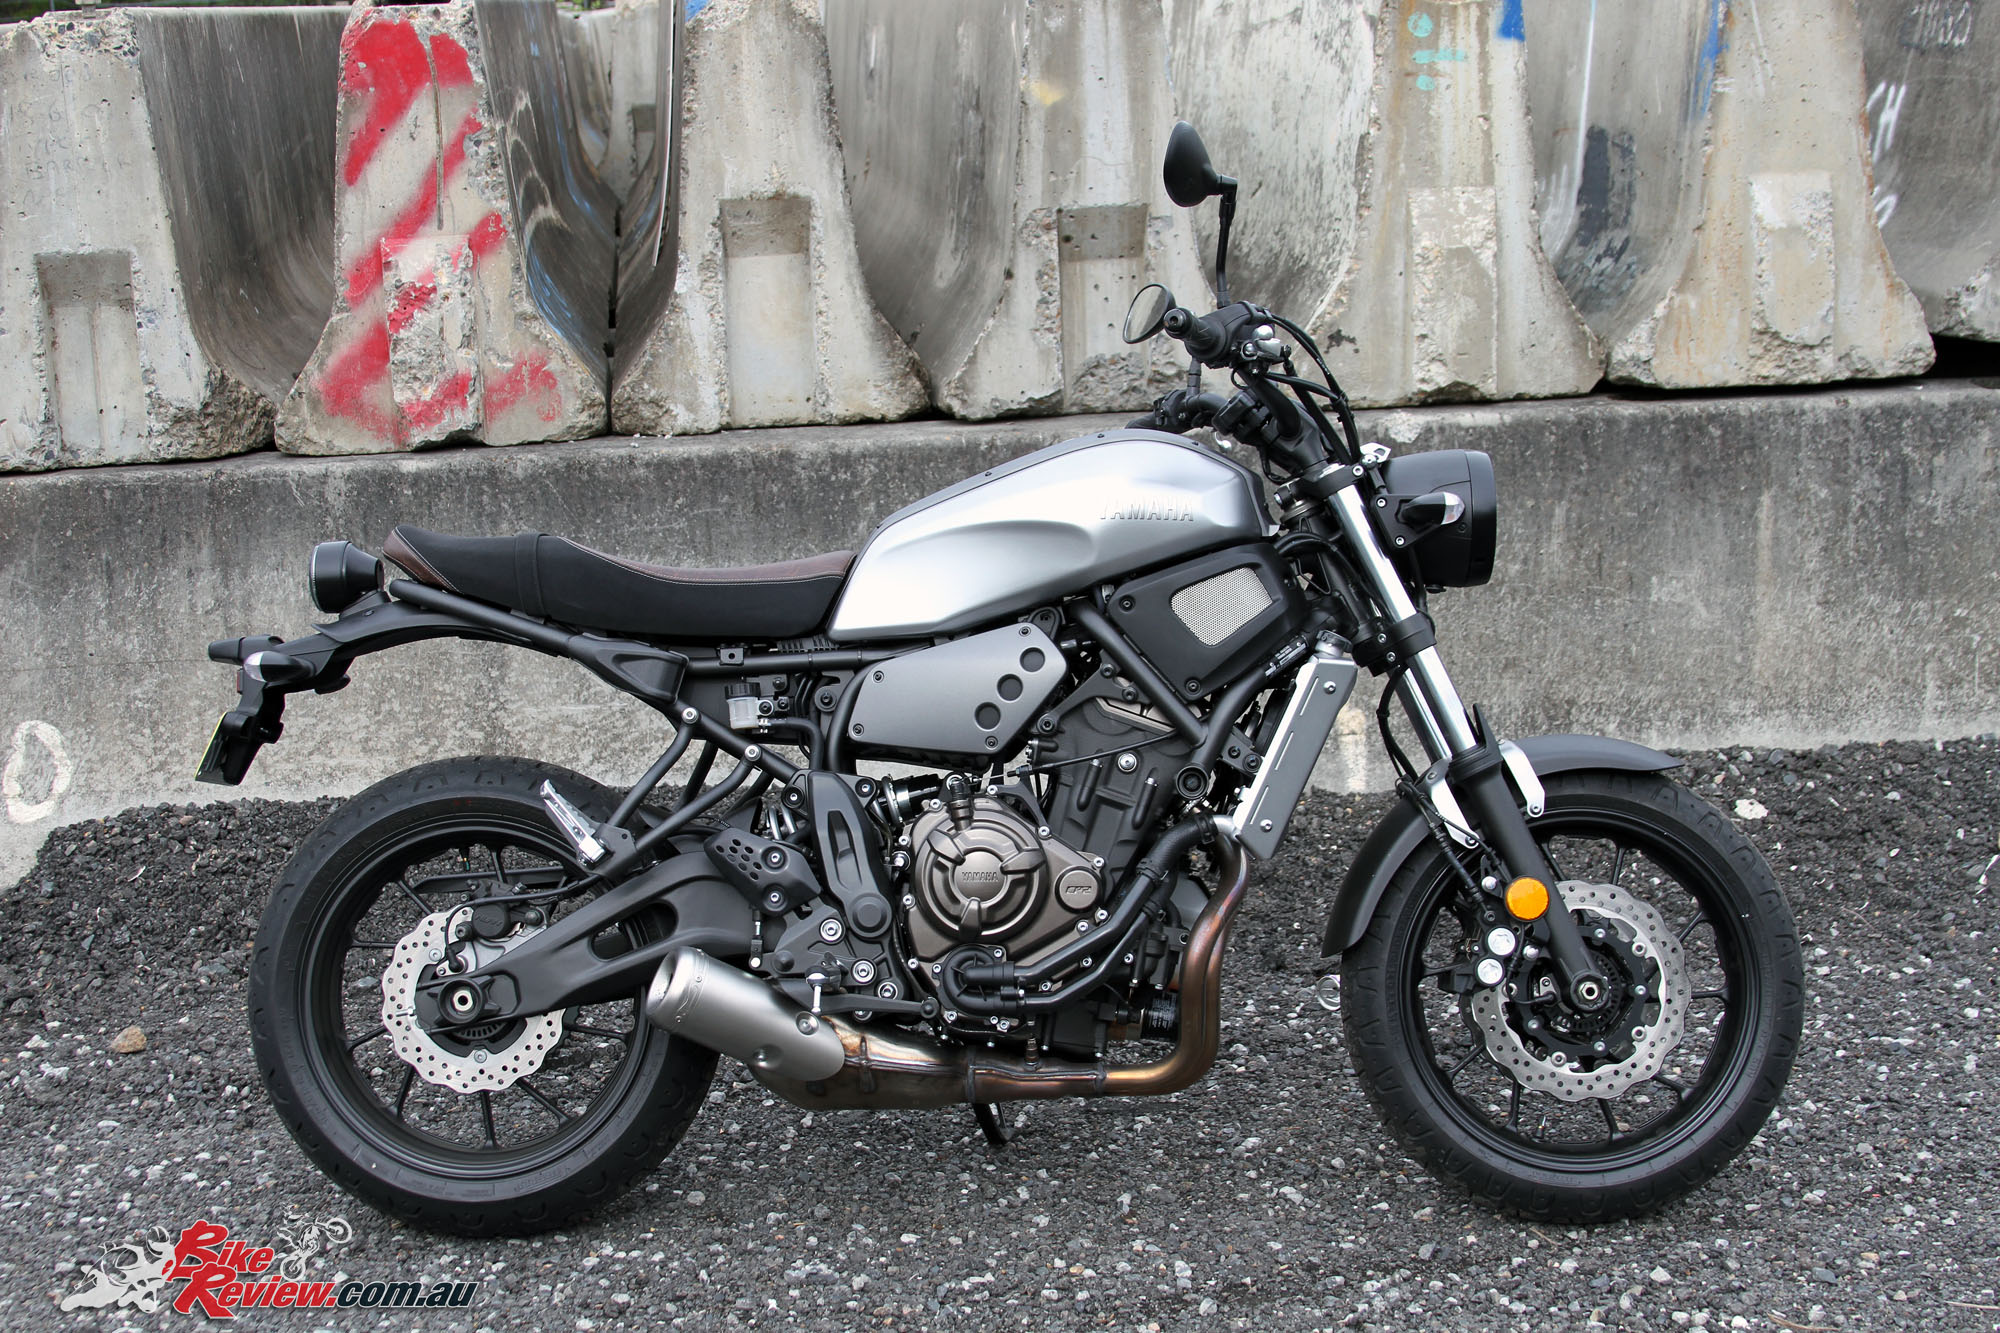 2016 Yamaha XSR700 Bike Review Stat 5